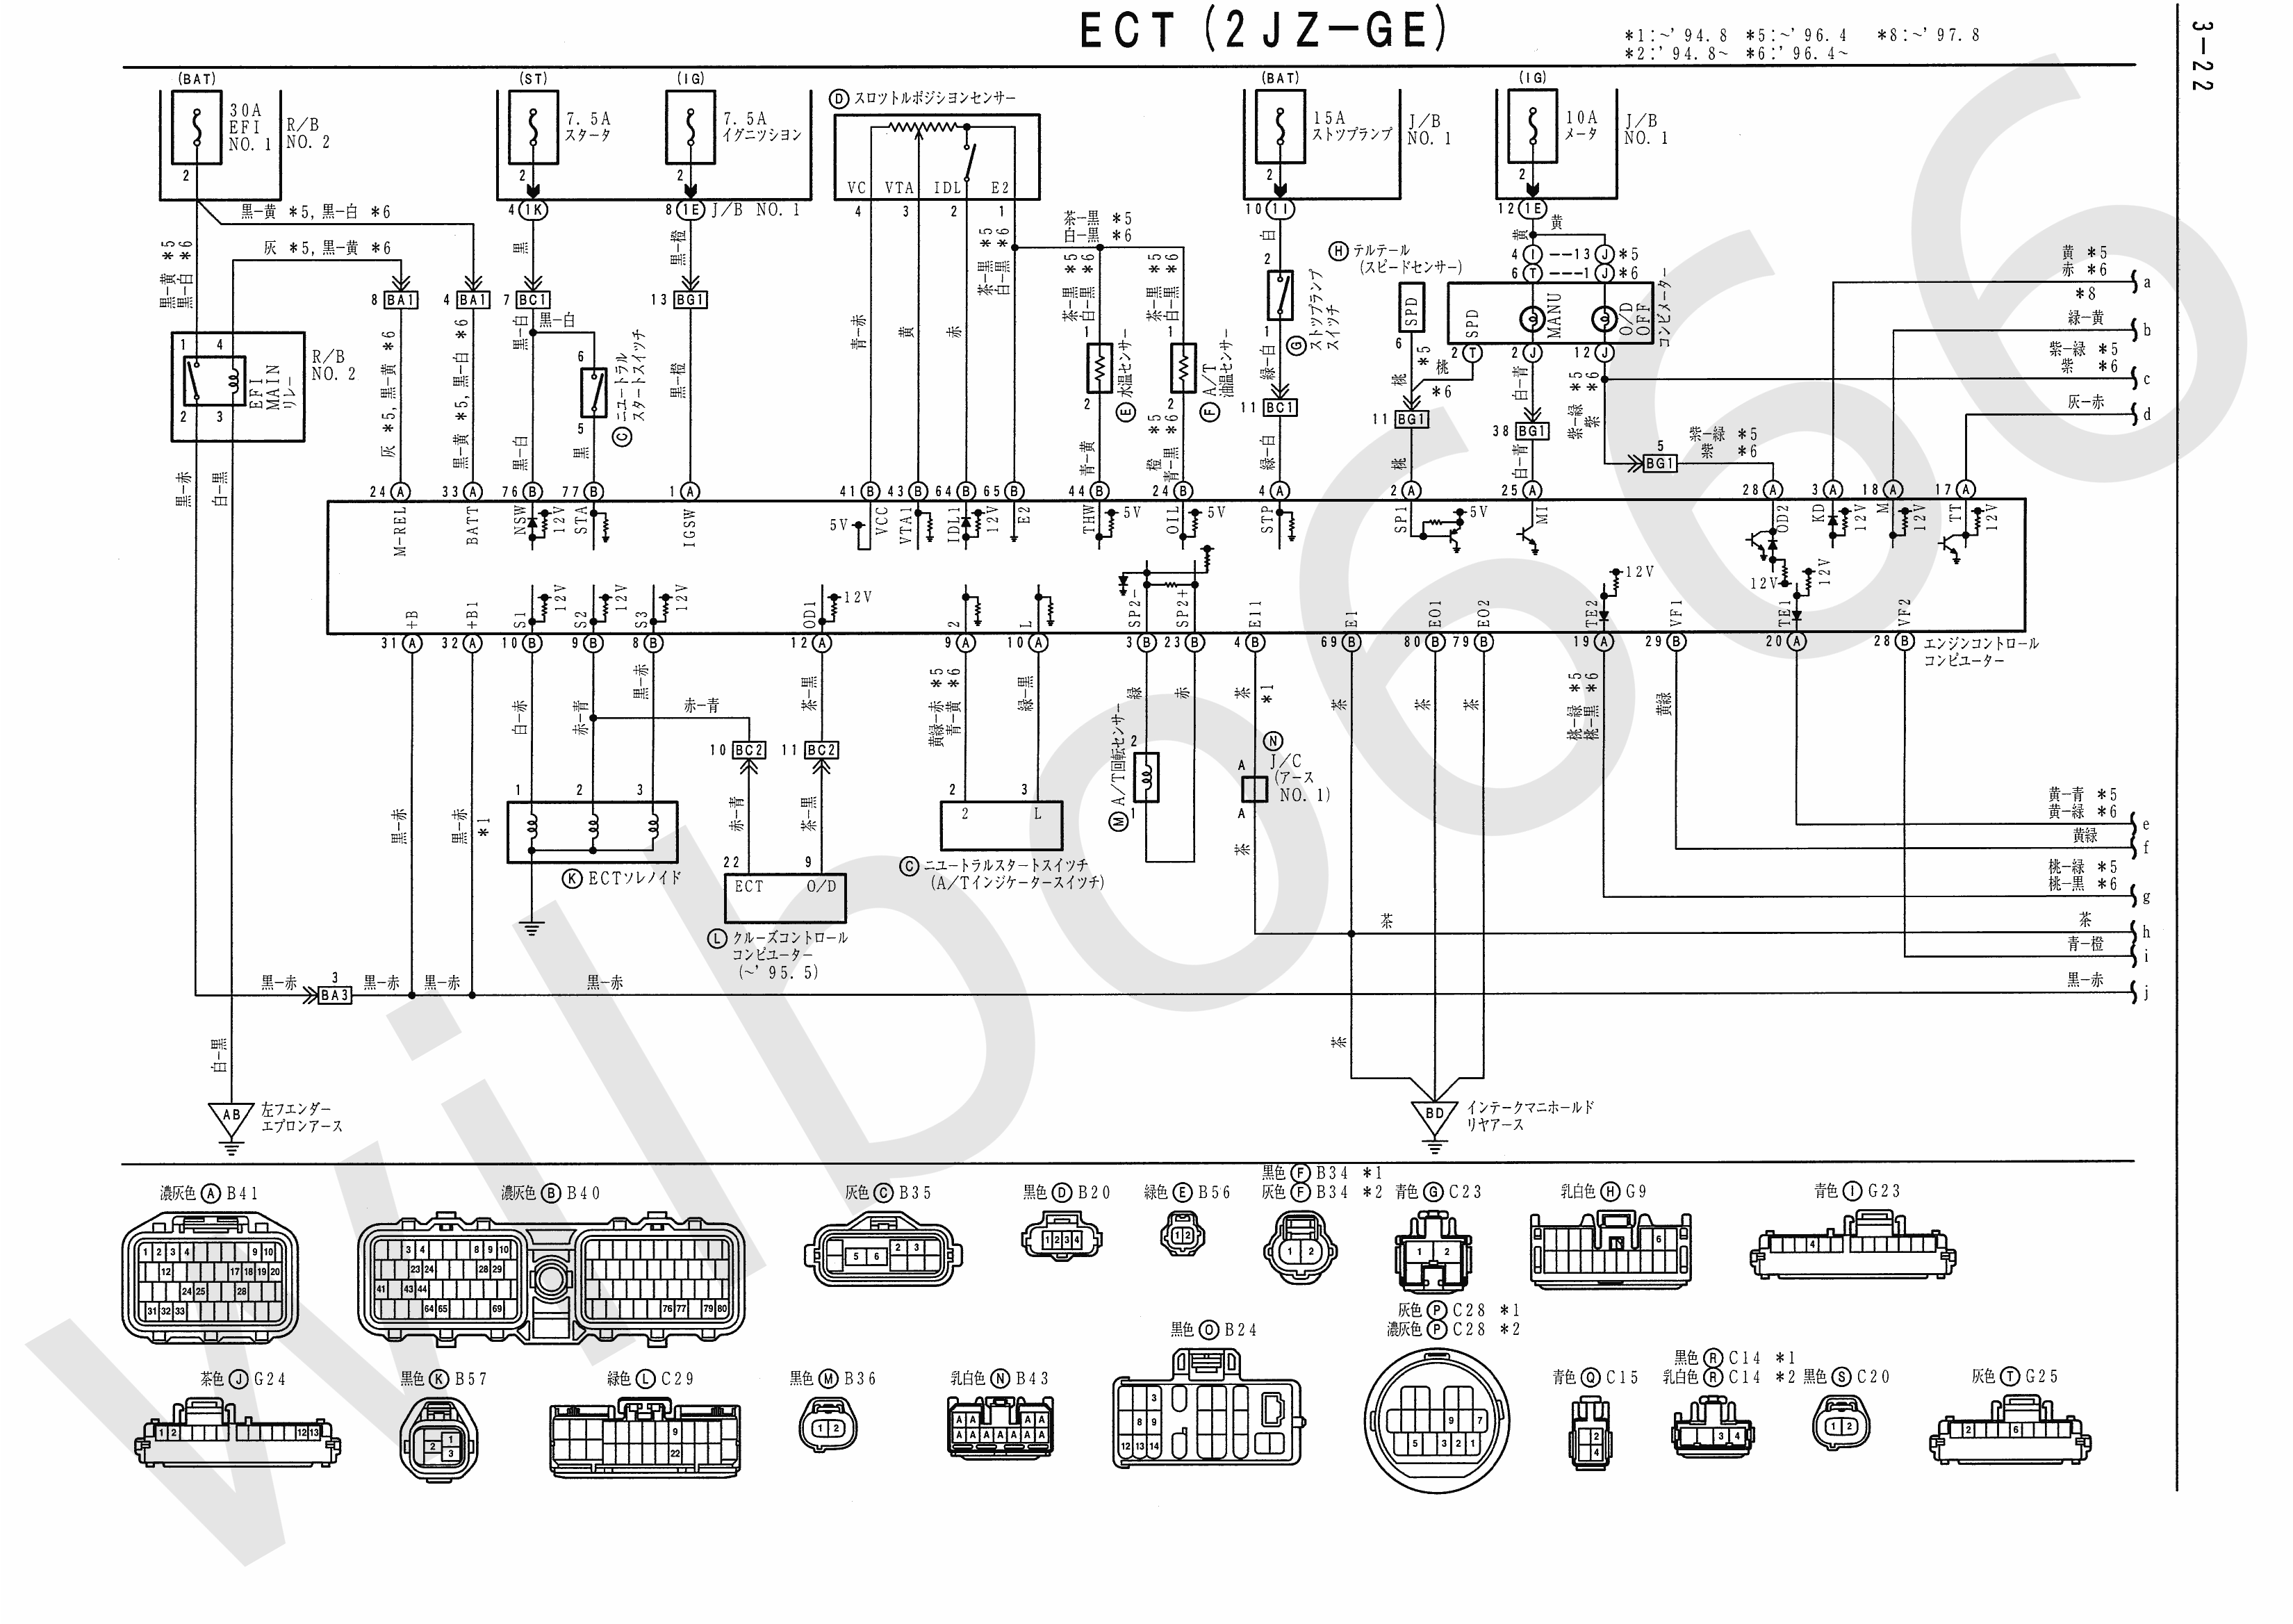 JZA80 Electrical Wiring Diagram 6742505 3 22 wilbo666 2jz ge jza80 supra engine wiring wb wiring diagram at reclaimingppi.co